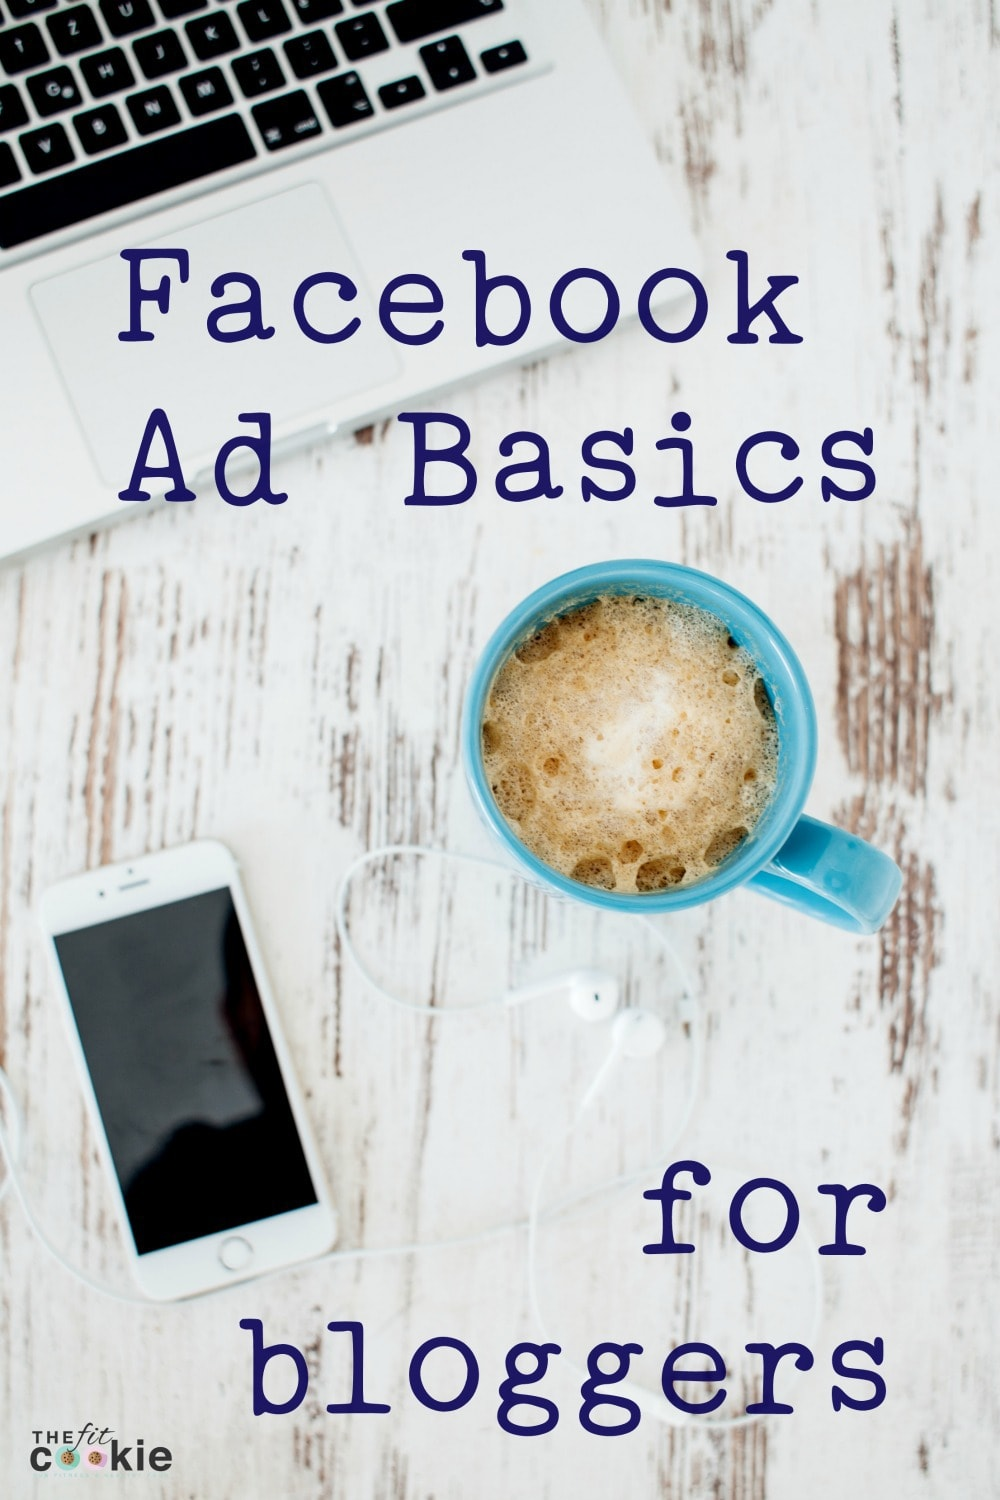 Interested in getting started with Facebook ads but not sure where to start? Here are some Facebook ad basics for bloggers to get the most out of your ads - @TheFitCookie